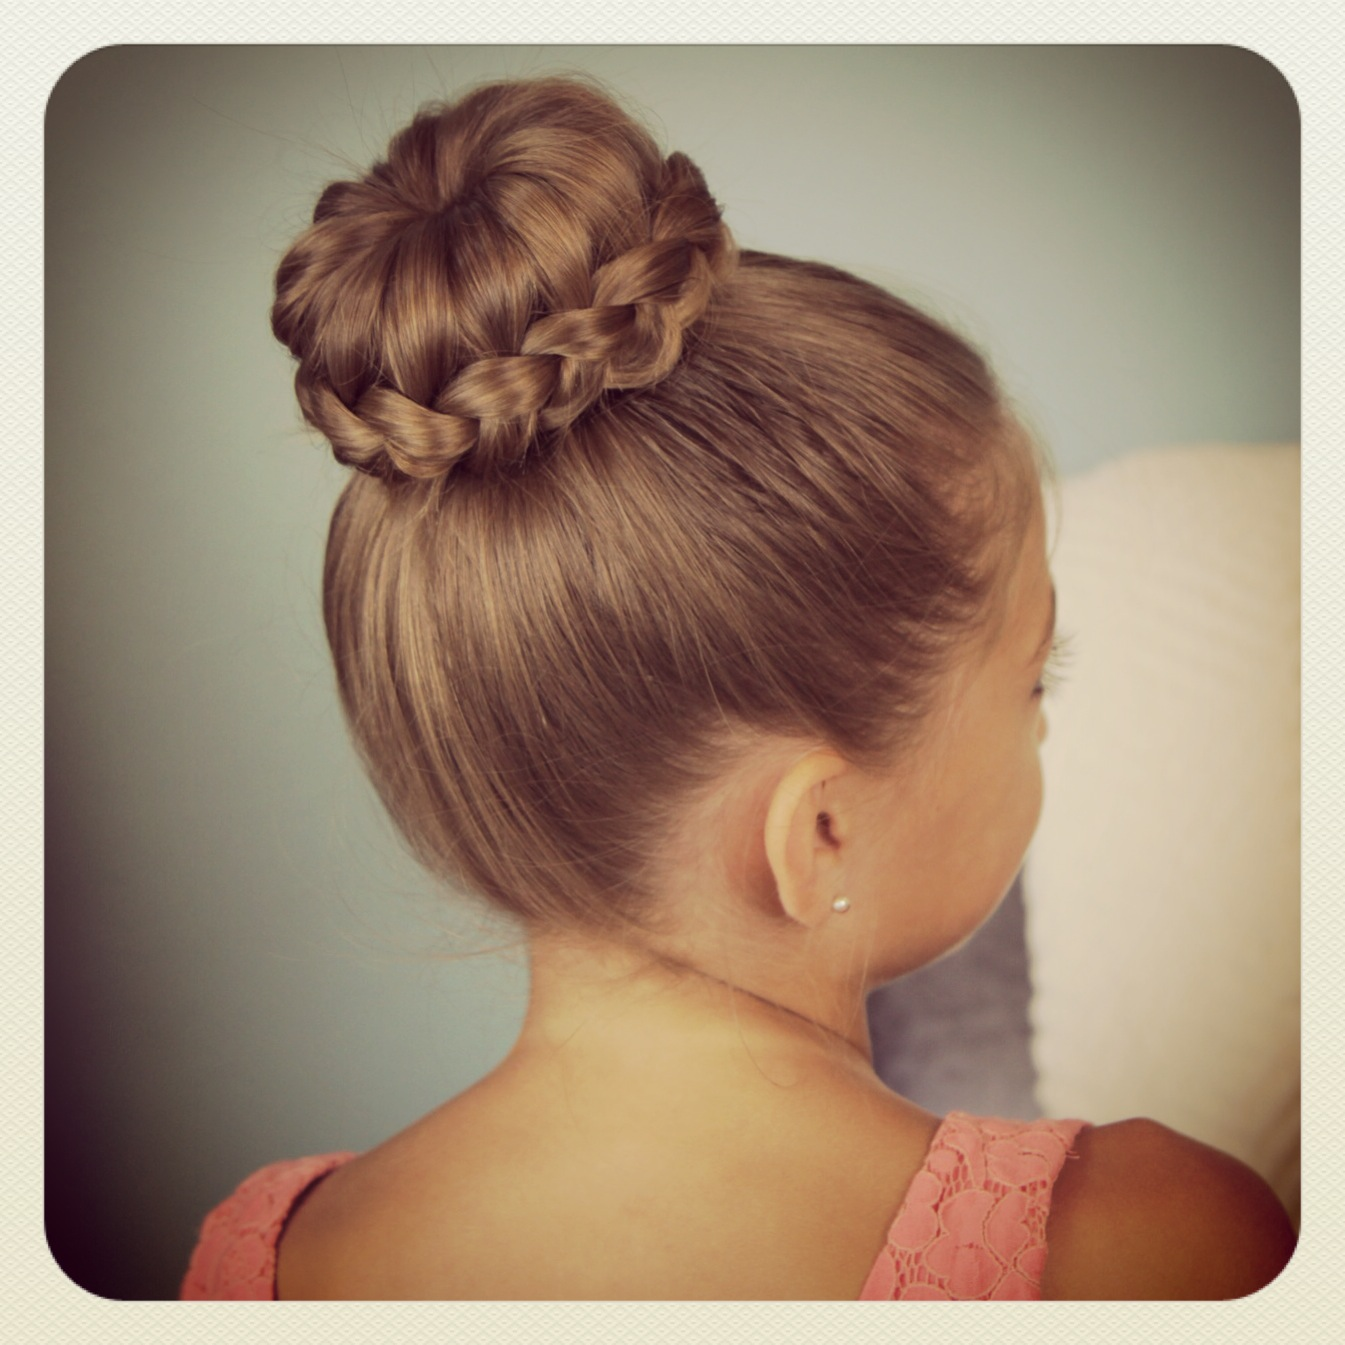 Awesome Hair Styles Braids With Bun You39ll Need Long Hair Or Long